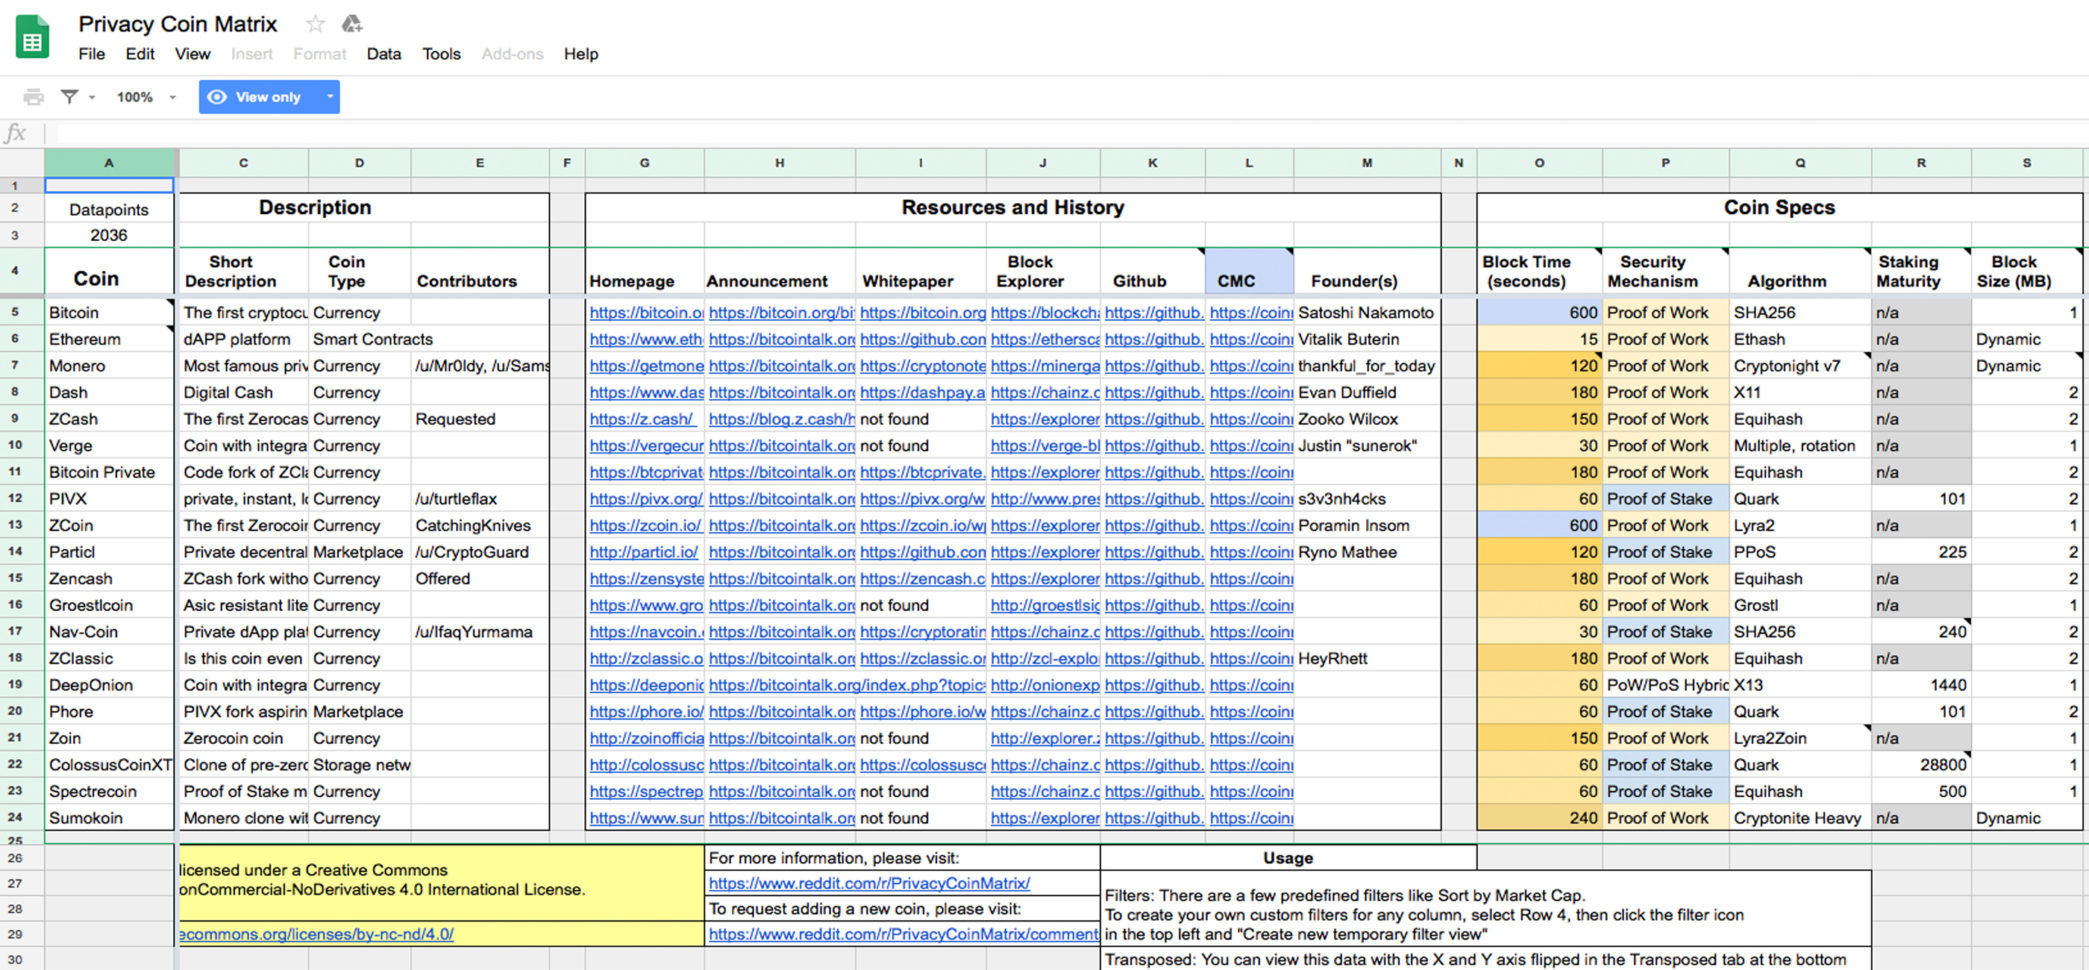 Bitcoin Trading Spreadsheet With The Privacy Coin Matrix: A Comprehensive Spreadsheet Of Anonymous